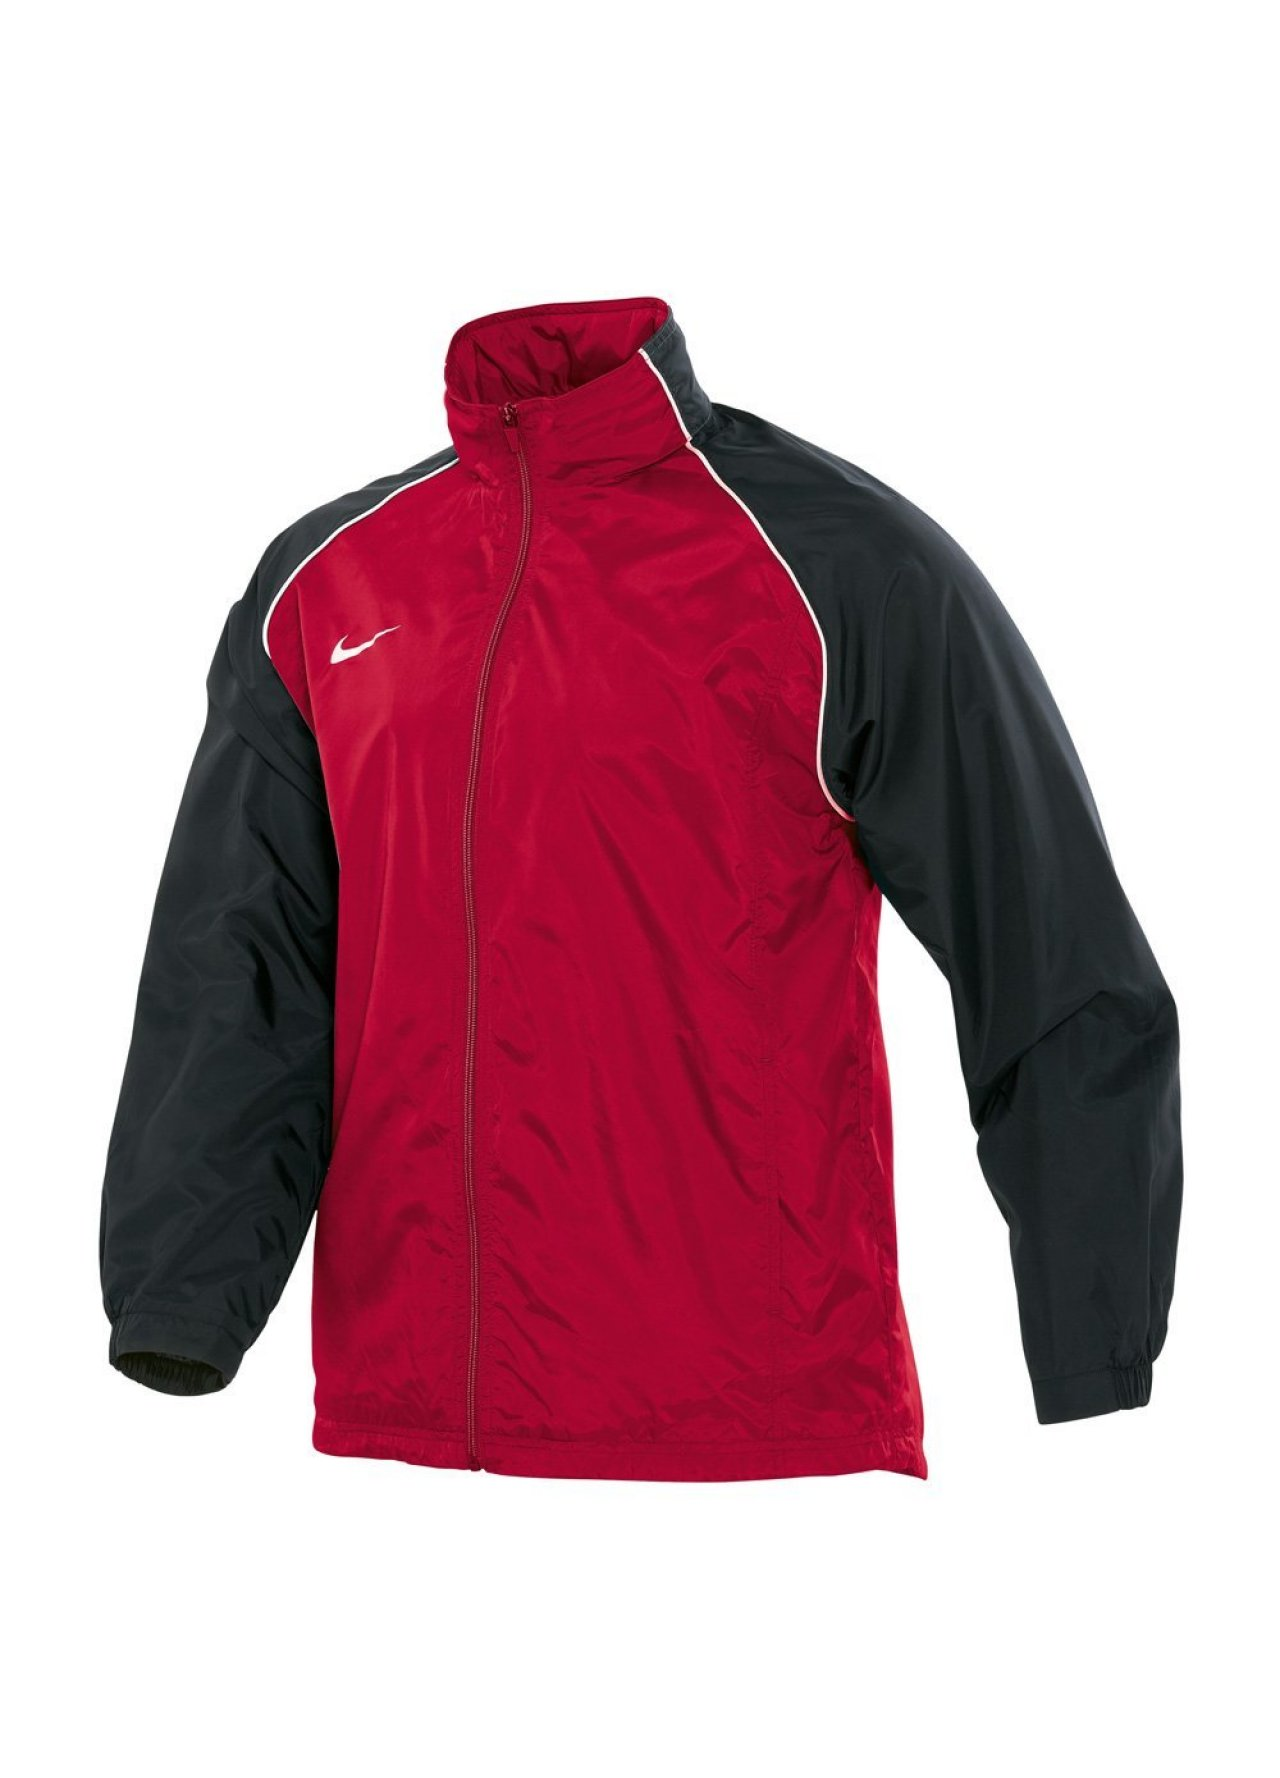 nike outerwear red nike full zip hooded rain jacket. Black Bedroom Furniture Sets. Home Design Ideas